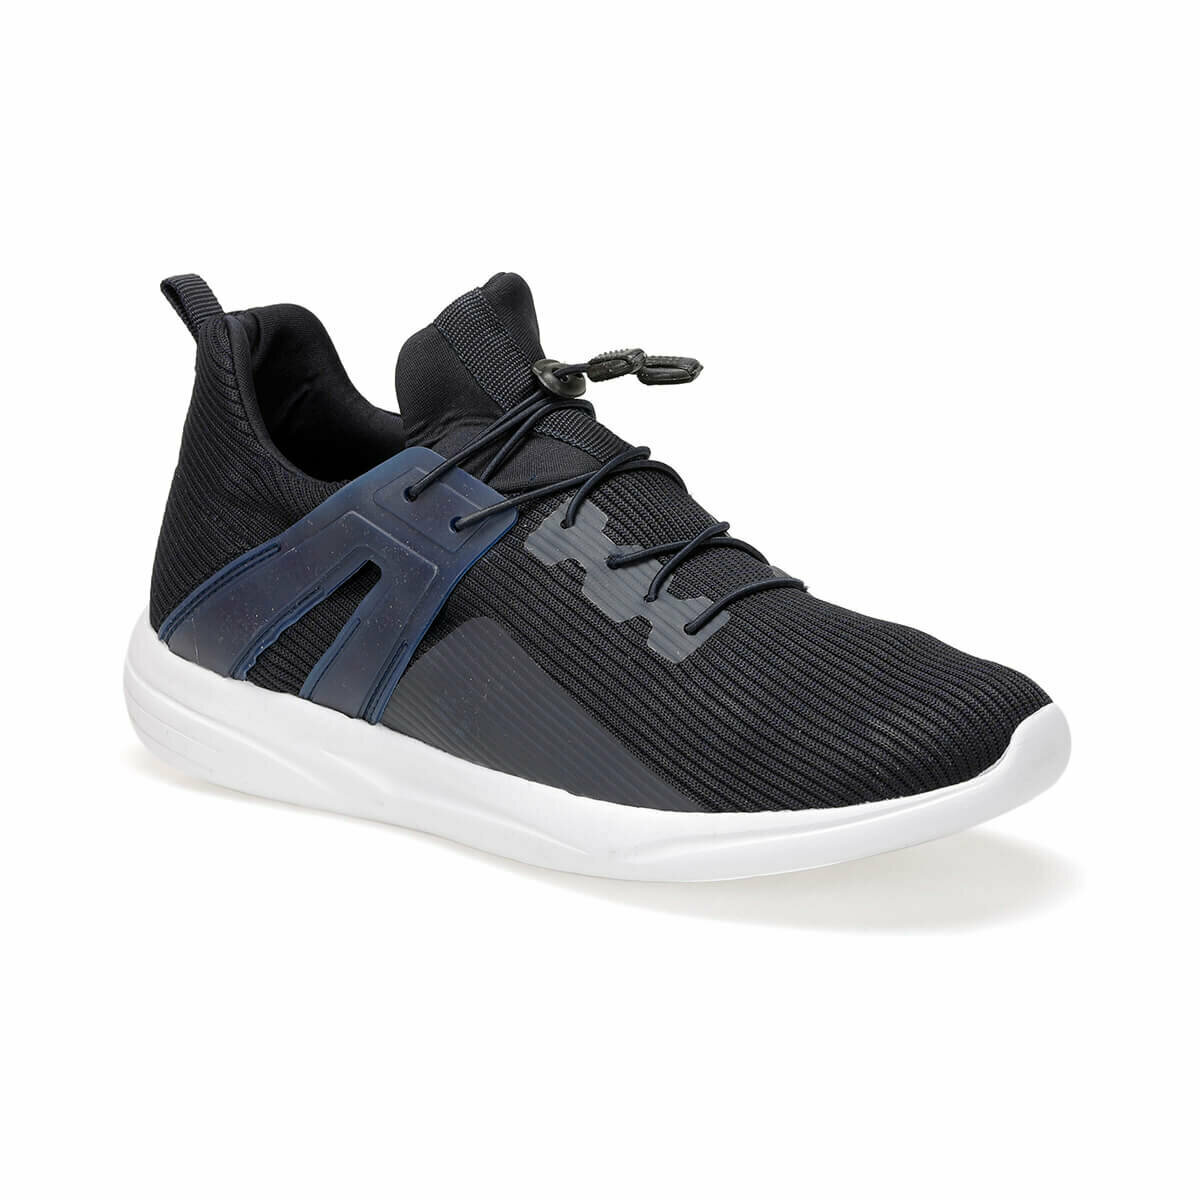 FLO ZUMA Navy Blue Men 'S Sneaker Shoes KINETIX